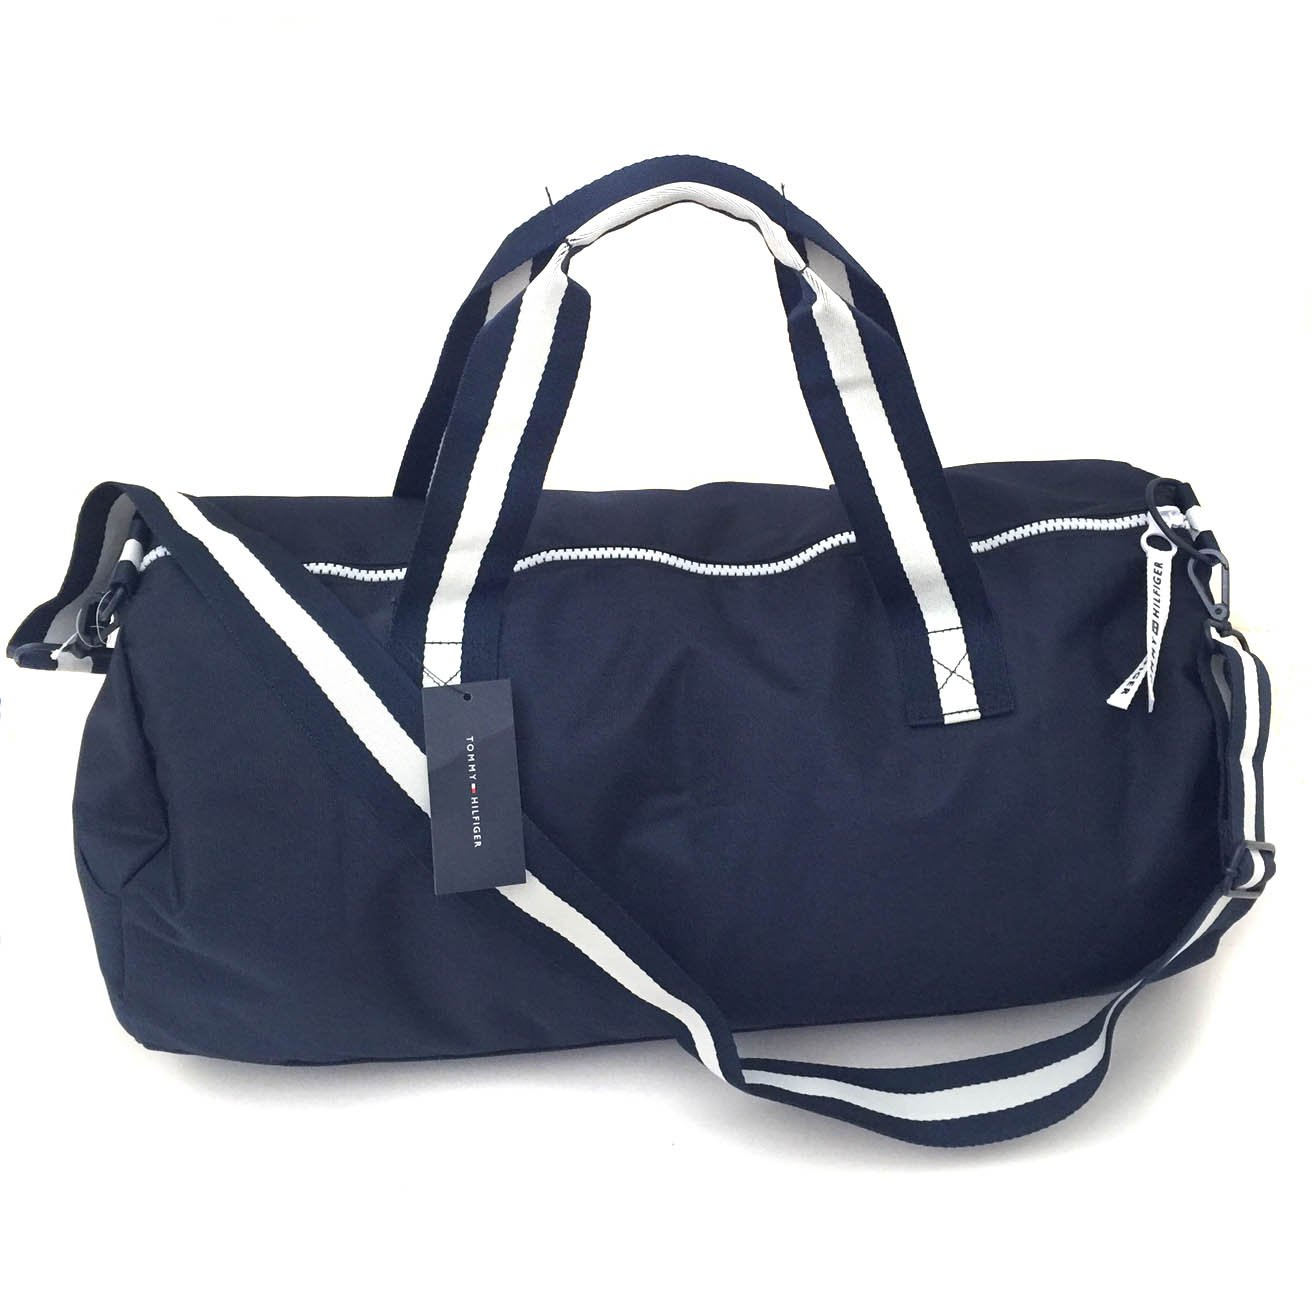 a84488bde1b Amazon.com: Tommy Hilfiger Duffle Bag Tommy Patriot Colorblock, Navy:  Clothing